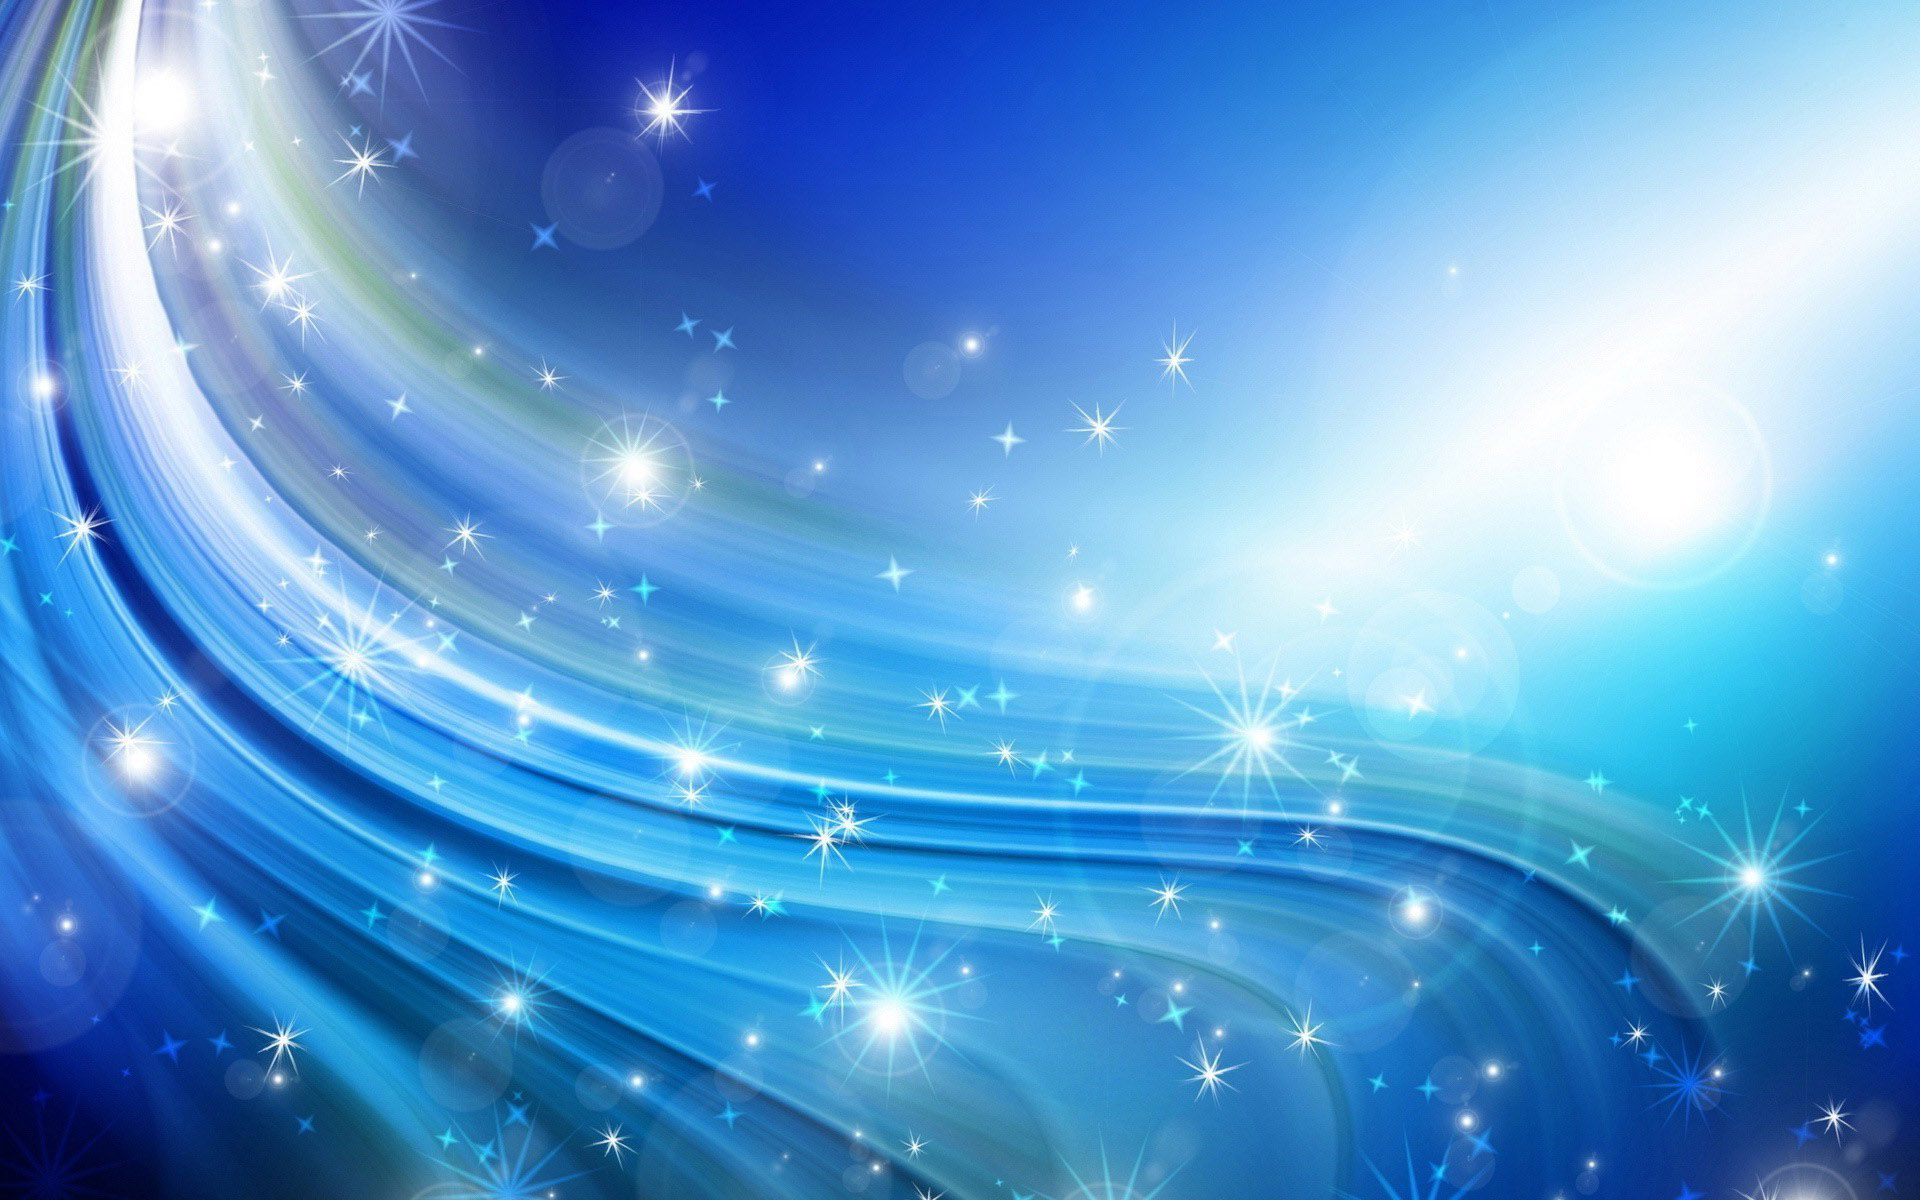 Blue Sparkle Backgrounds 1920x1200